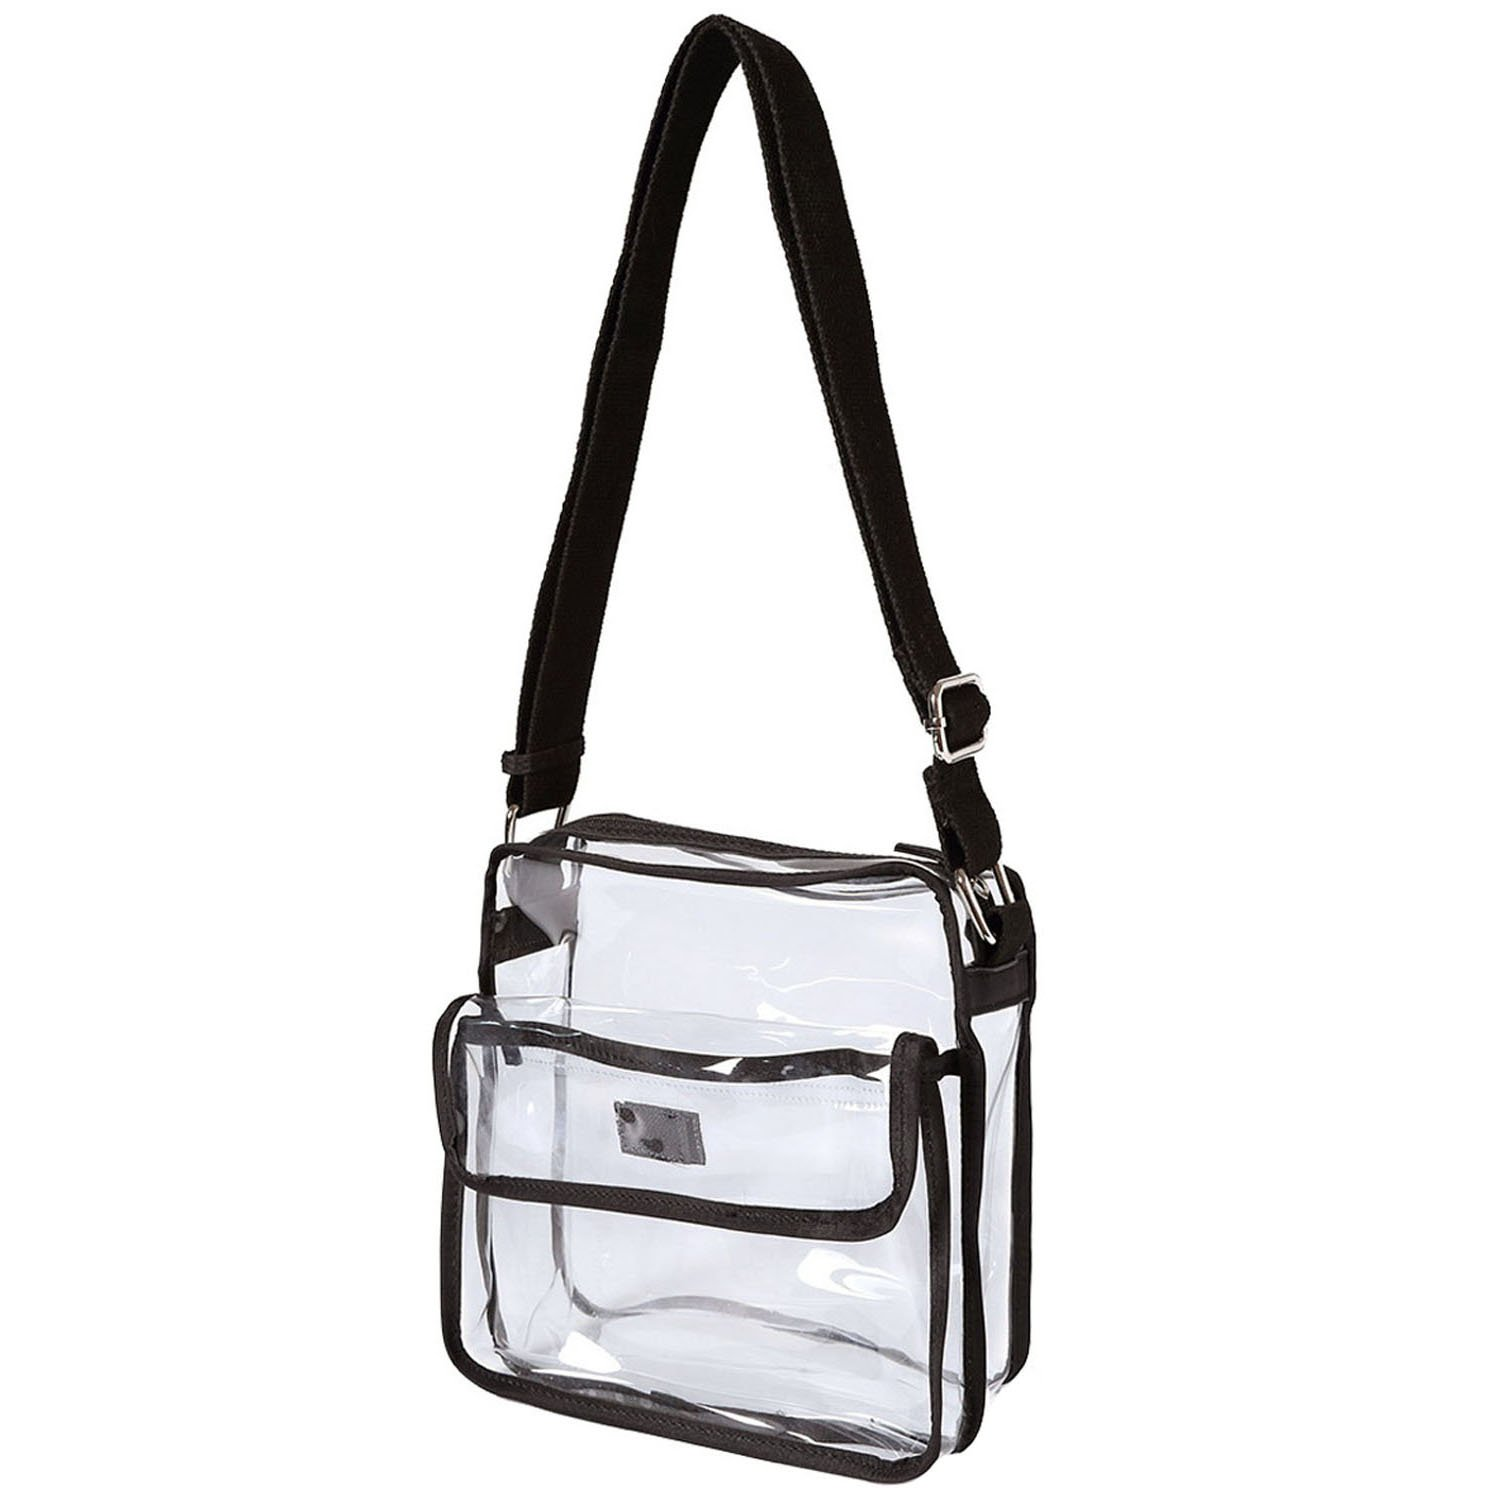 NFL Stadium Approved Clear Shoulder Messenger Bag  Medium Transparent Purse